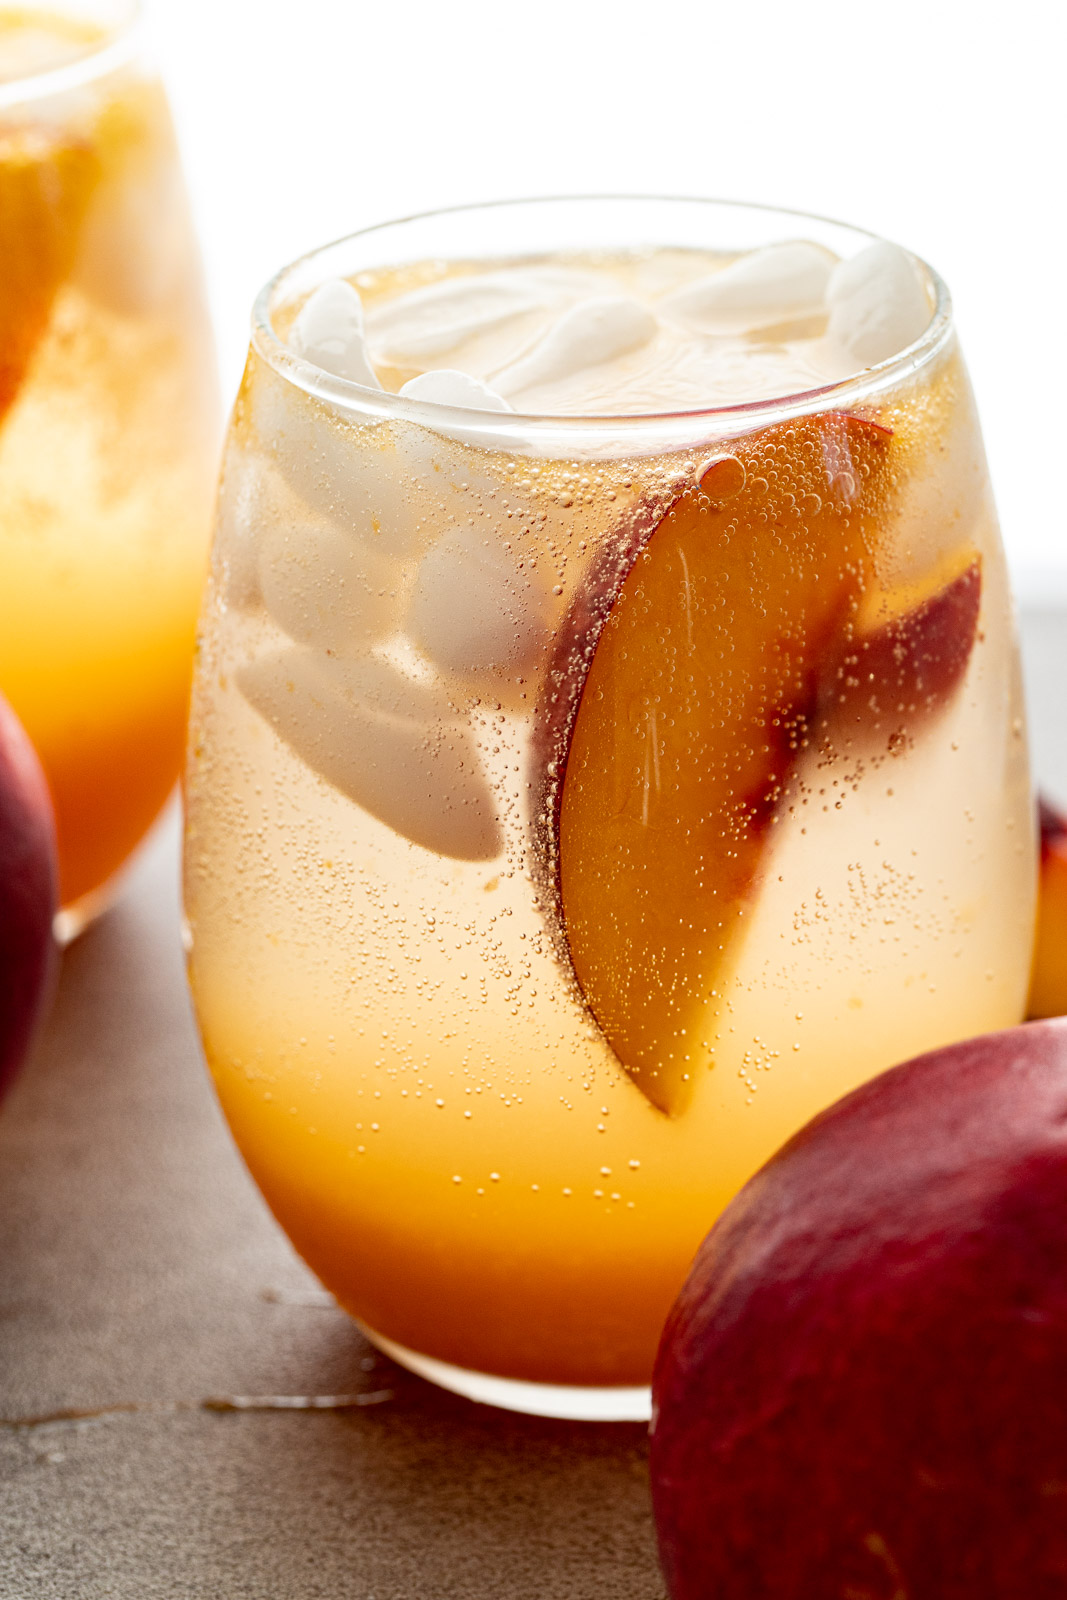 Simple Nectarine Shrub in a glass cup.